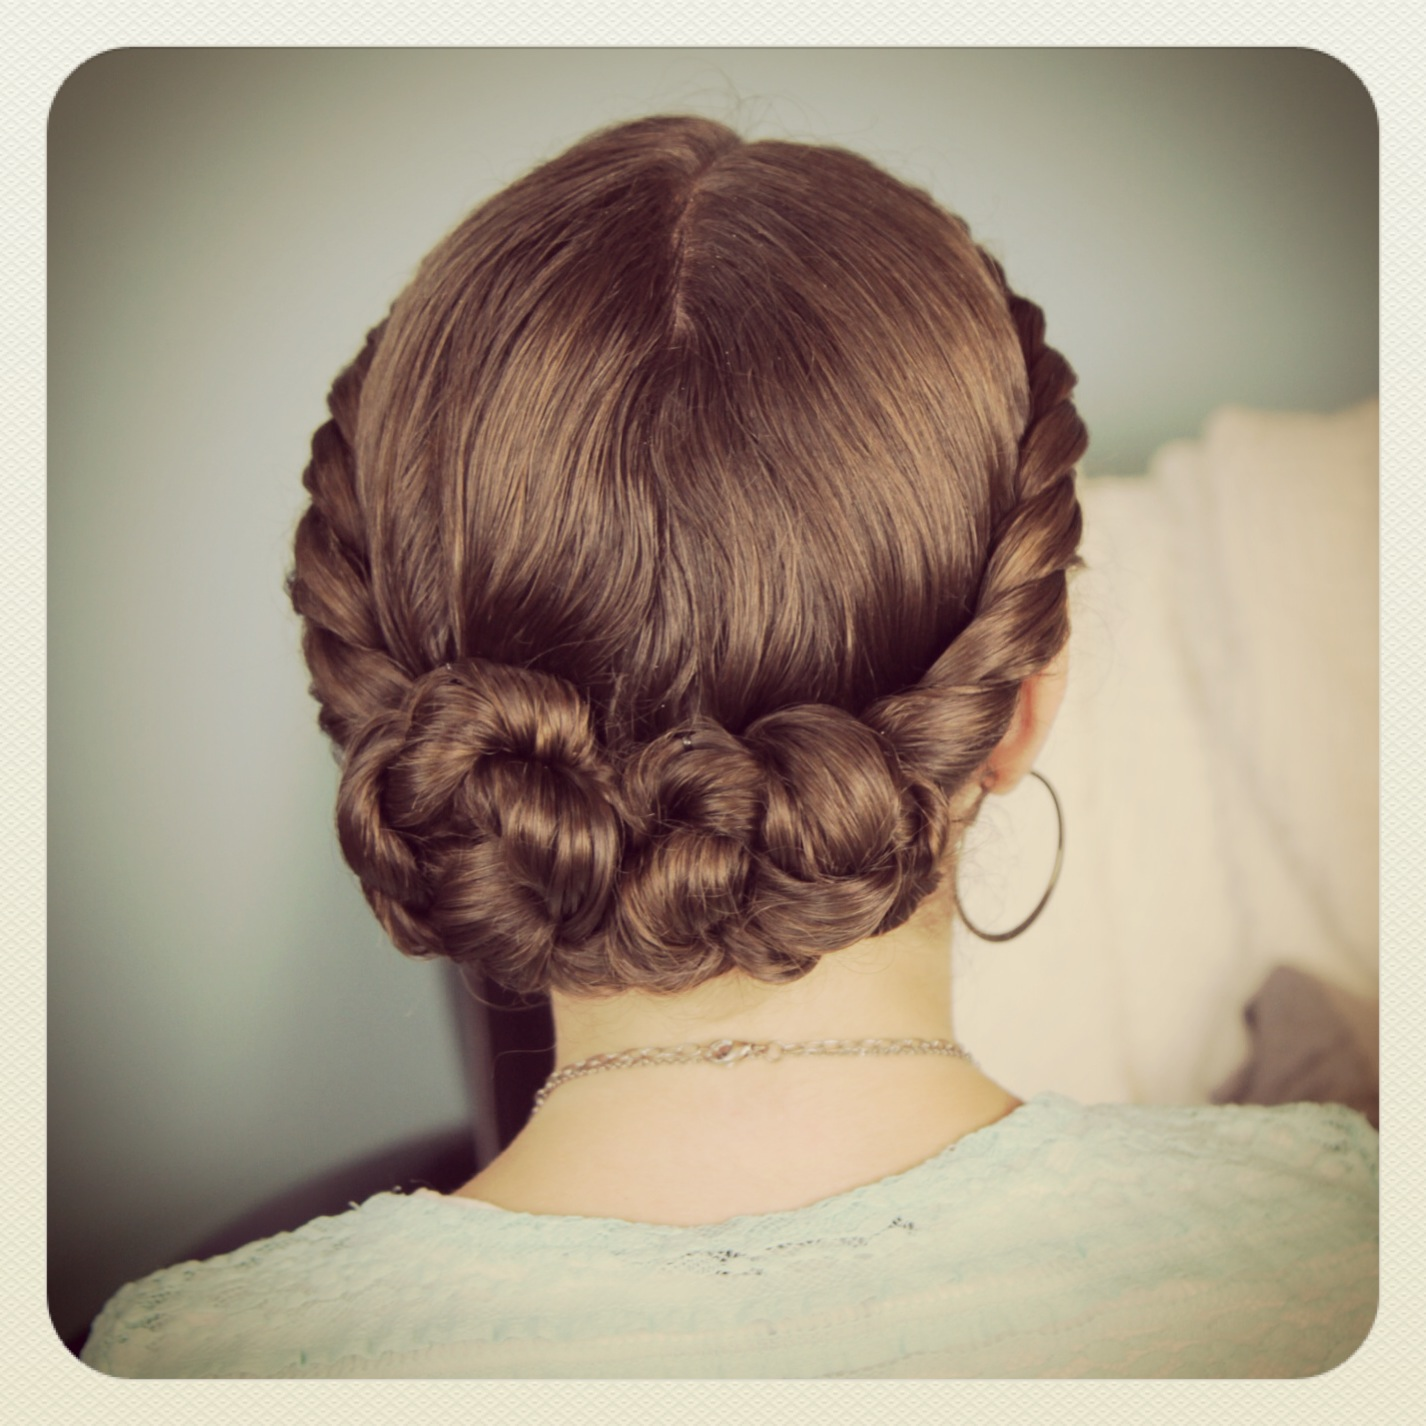 Cgh Hairstyles: Homecoming Hairstyles